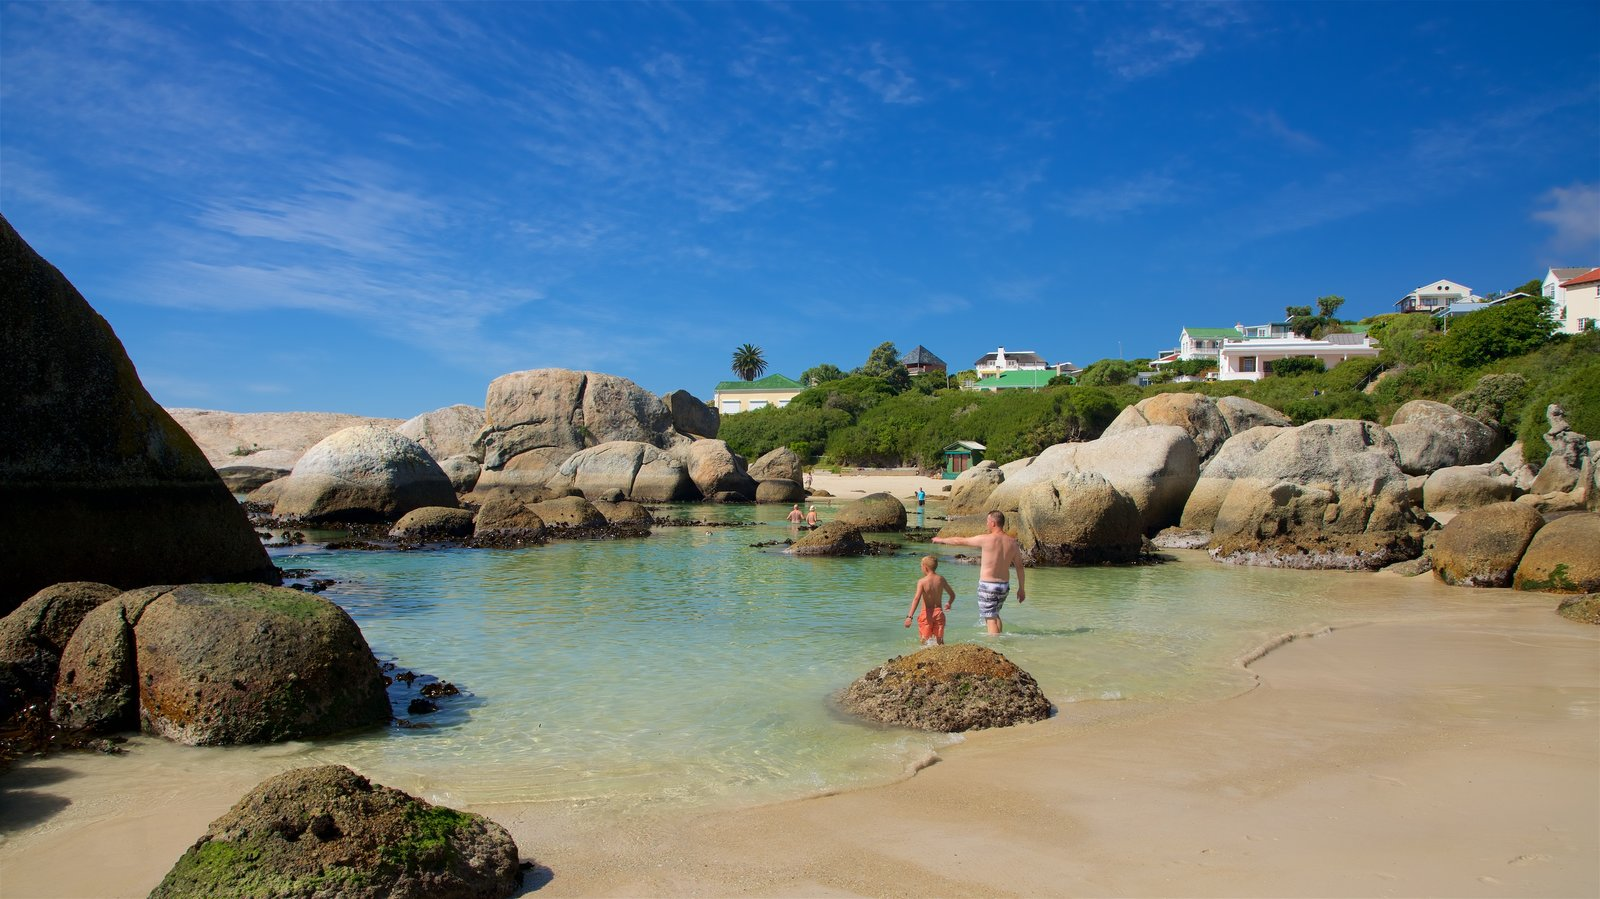 Boulders Beach which includes rugged coastline and a beach as well as a family